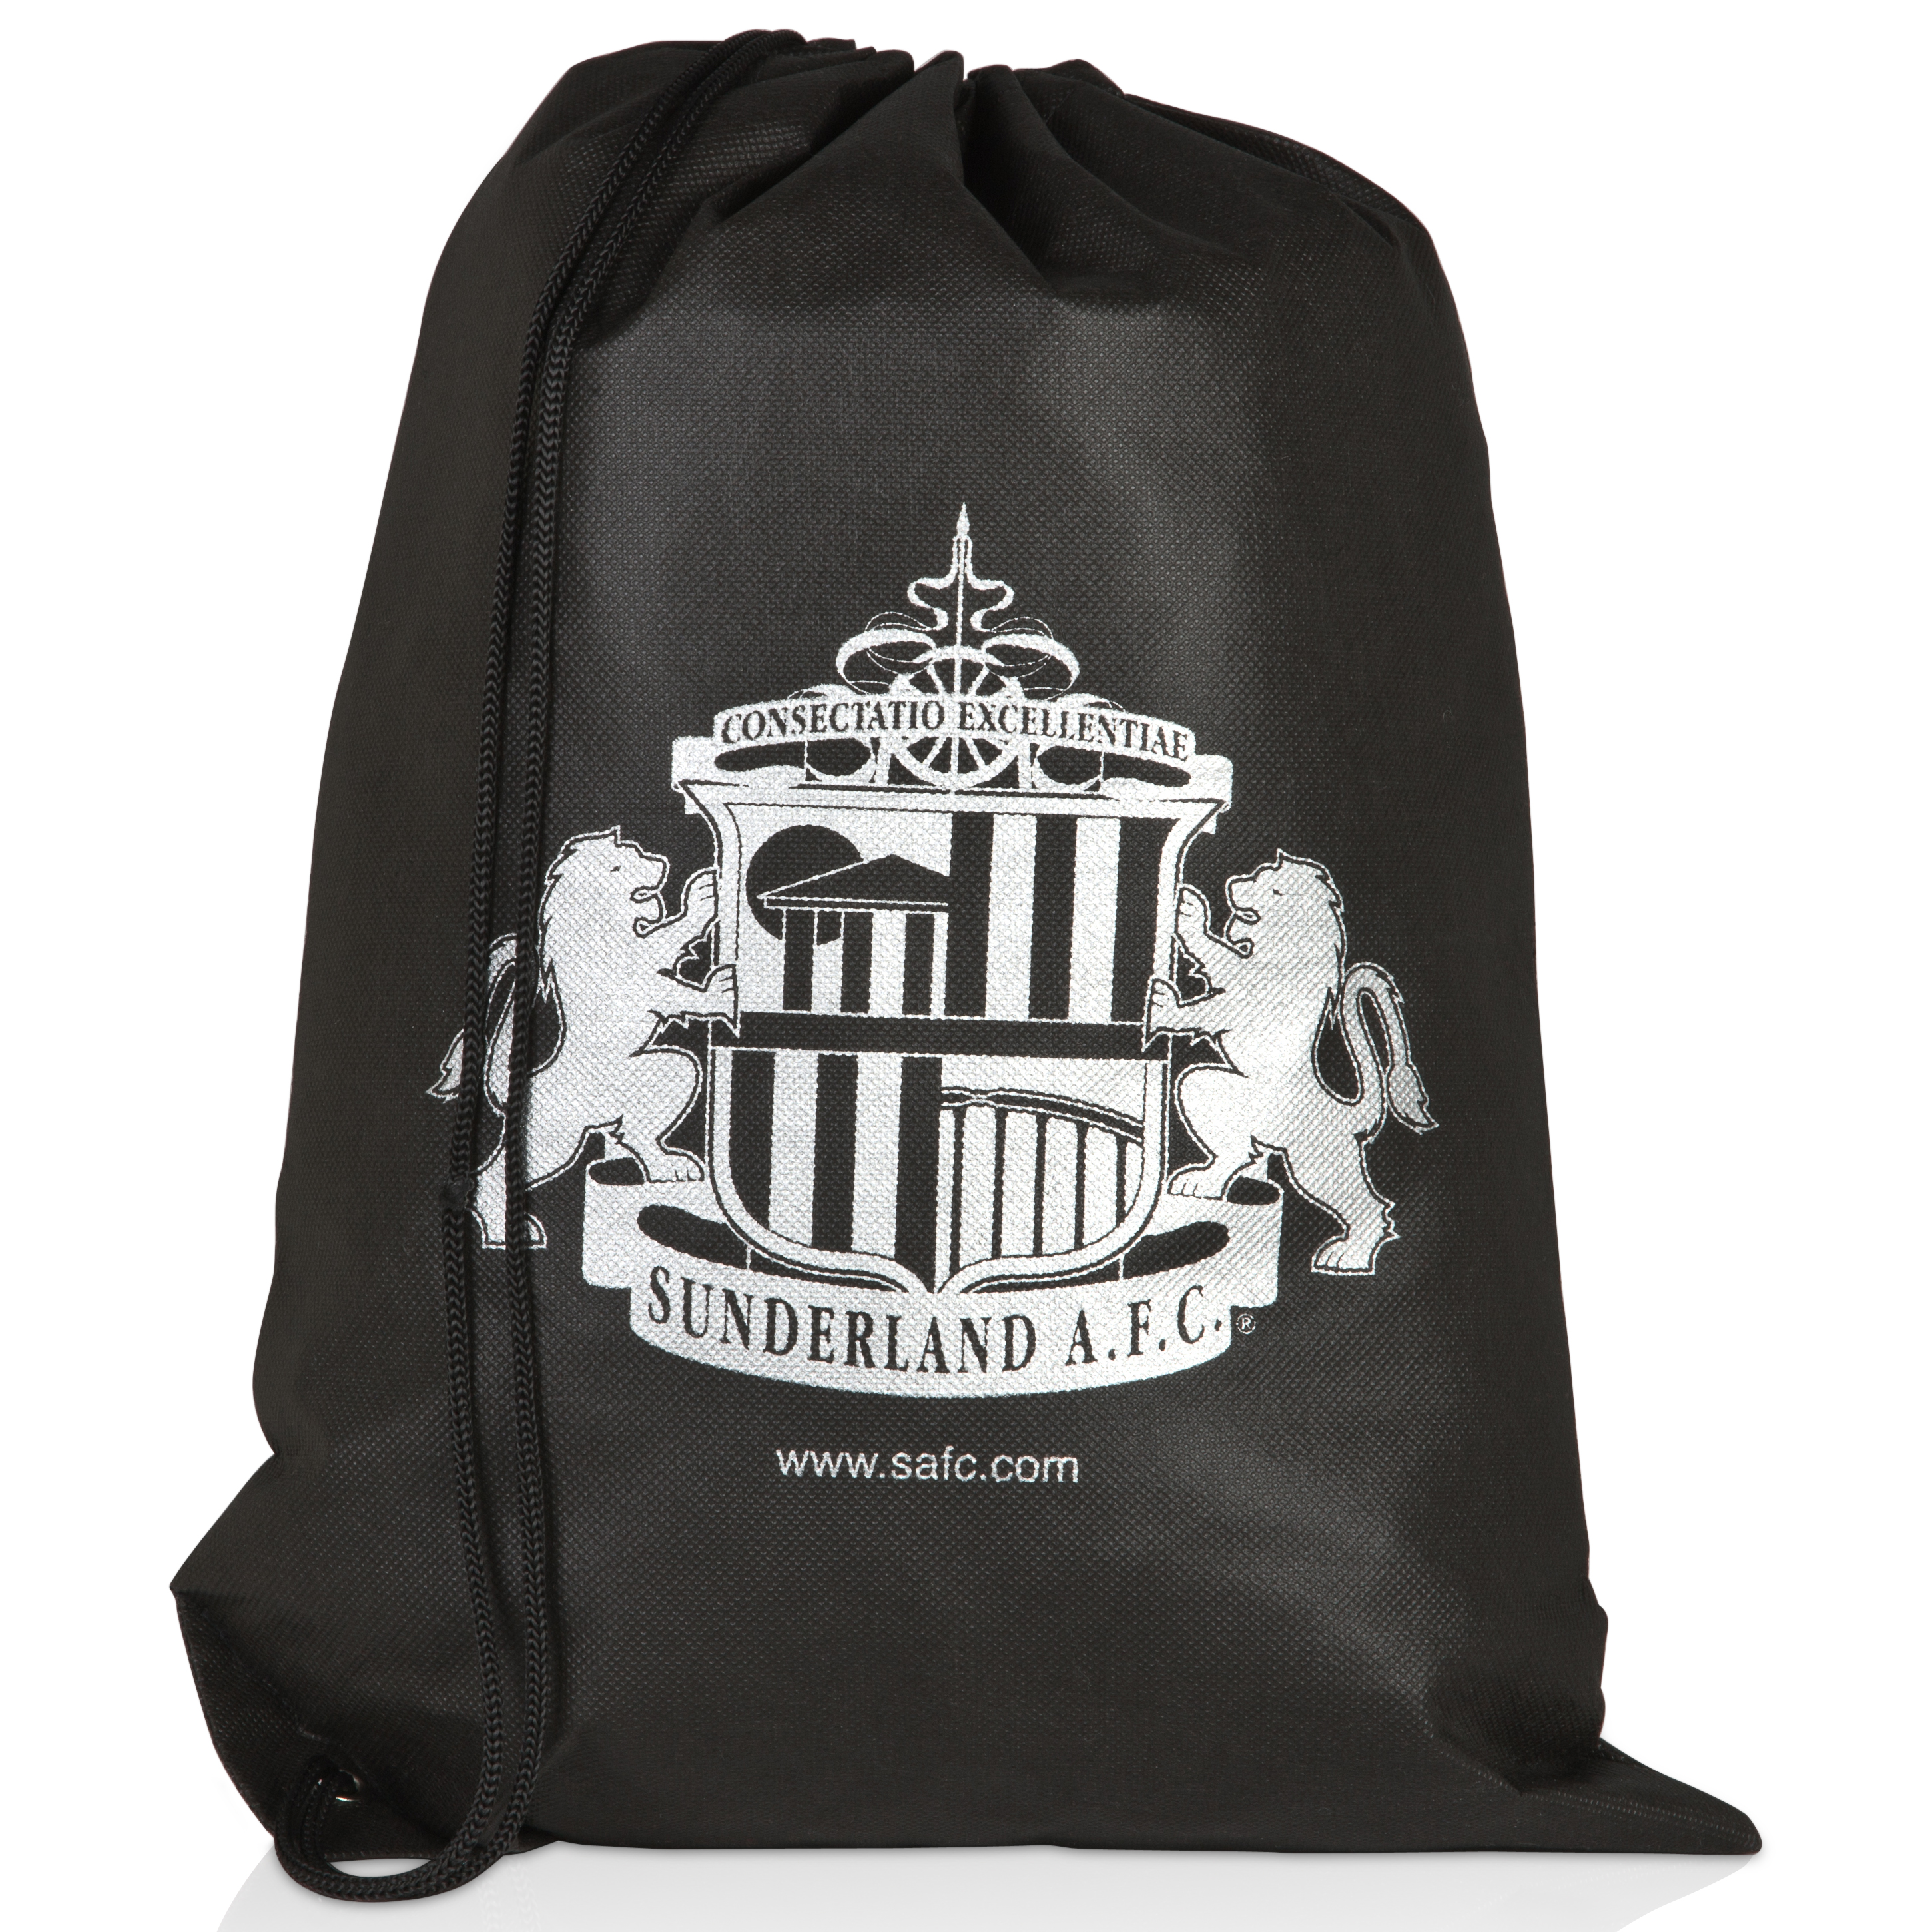 Sunderland Rope Bag for Life